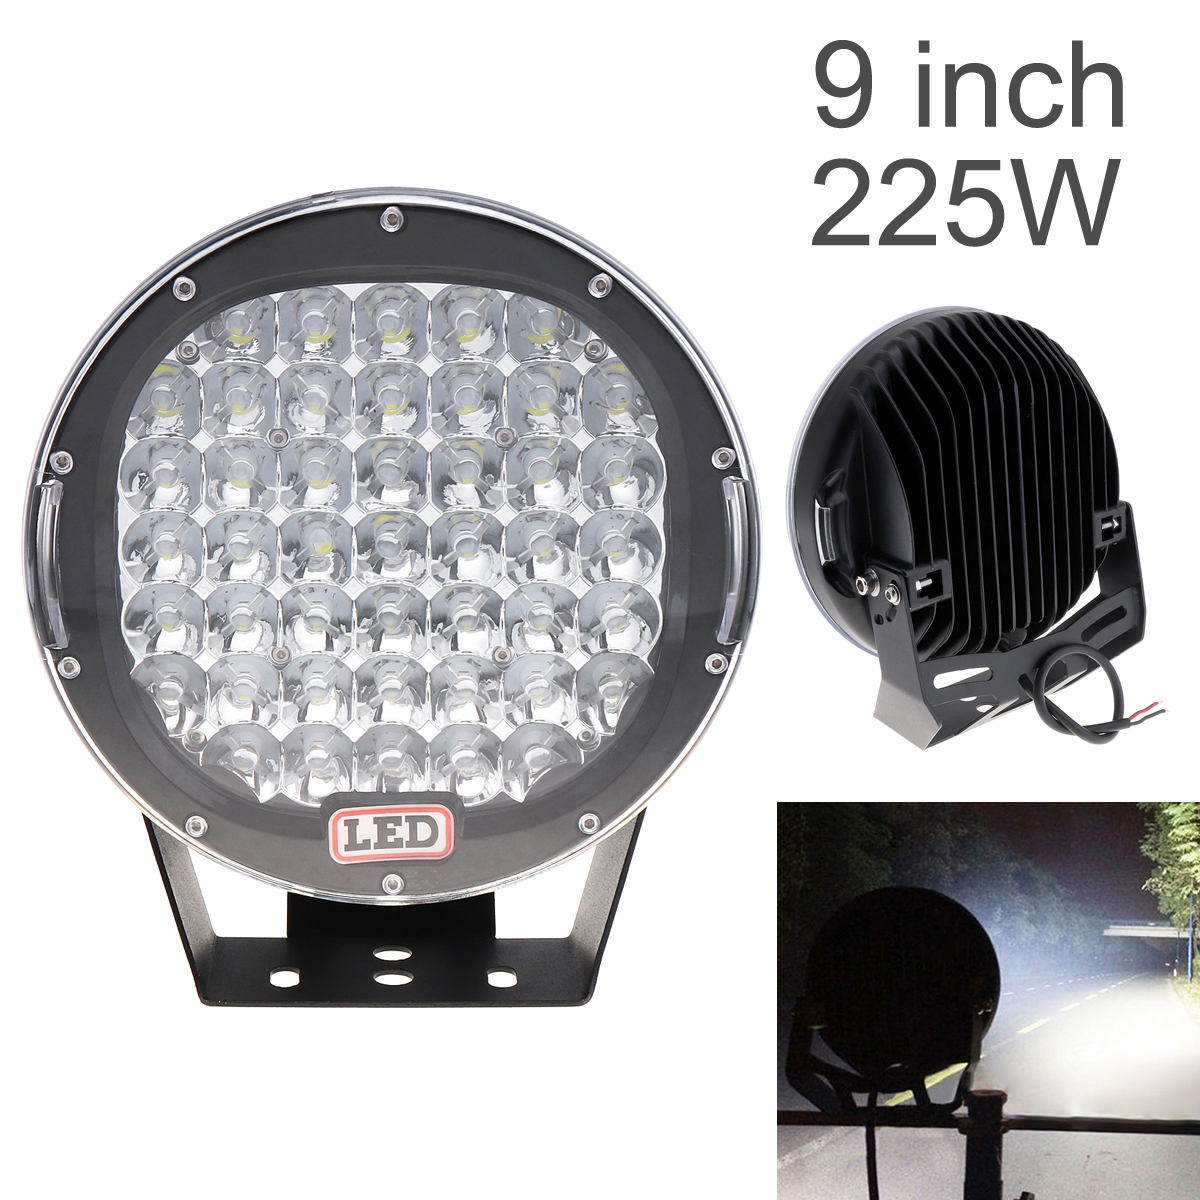 9 Inch Rounded 225W 45x LED Car Worklight Spot / Flood Light Vehicle Headlight Driving Lights for Offroad SUV ATV Truck Boat купить